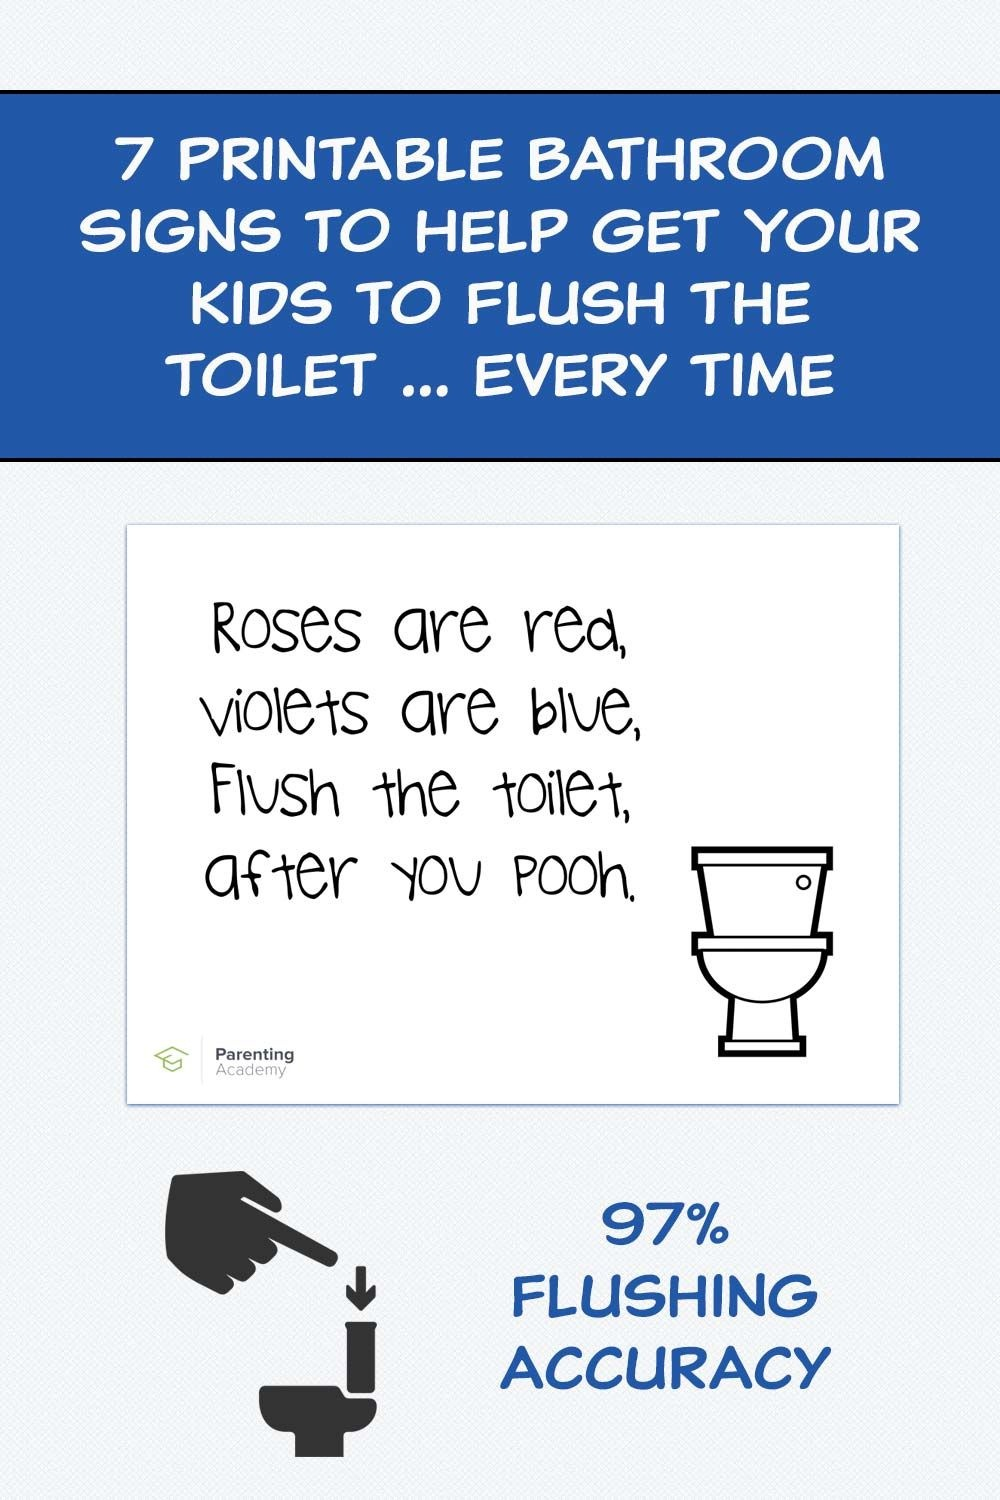 7 Printable Bathroom Signs To Help Get Your Kids To Flush The Toilet - Free Printable Flush The Toilet Signs